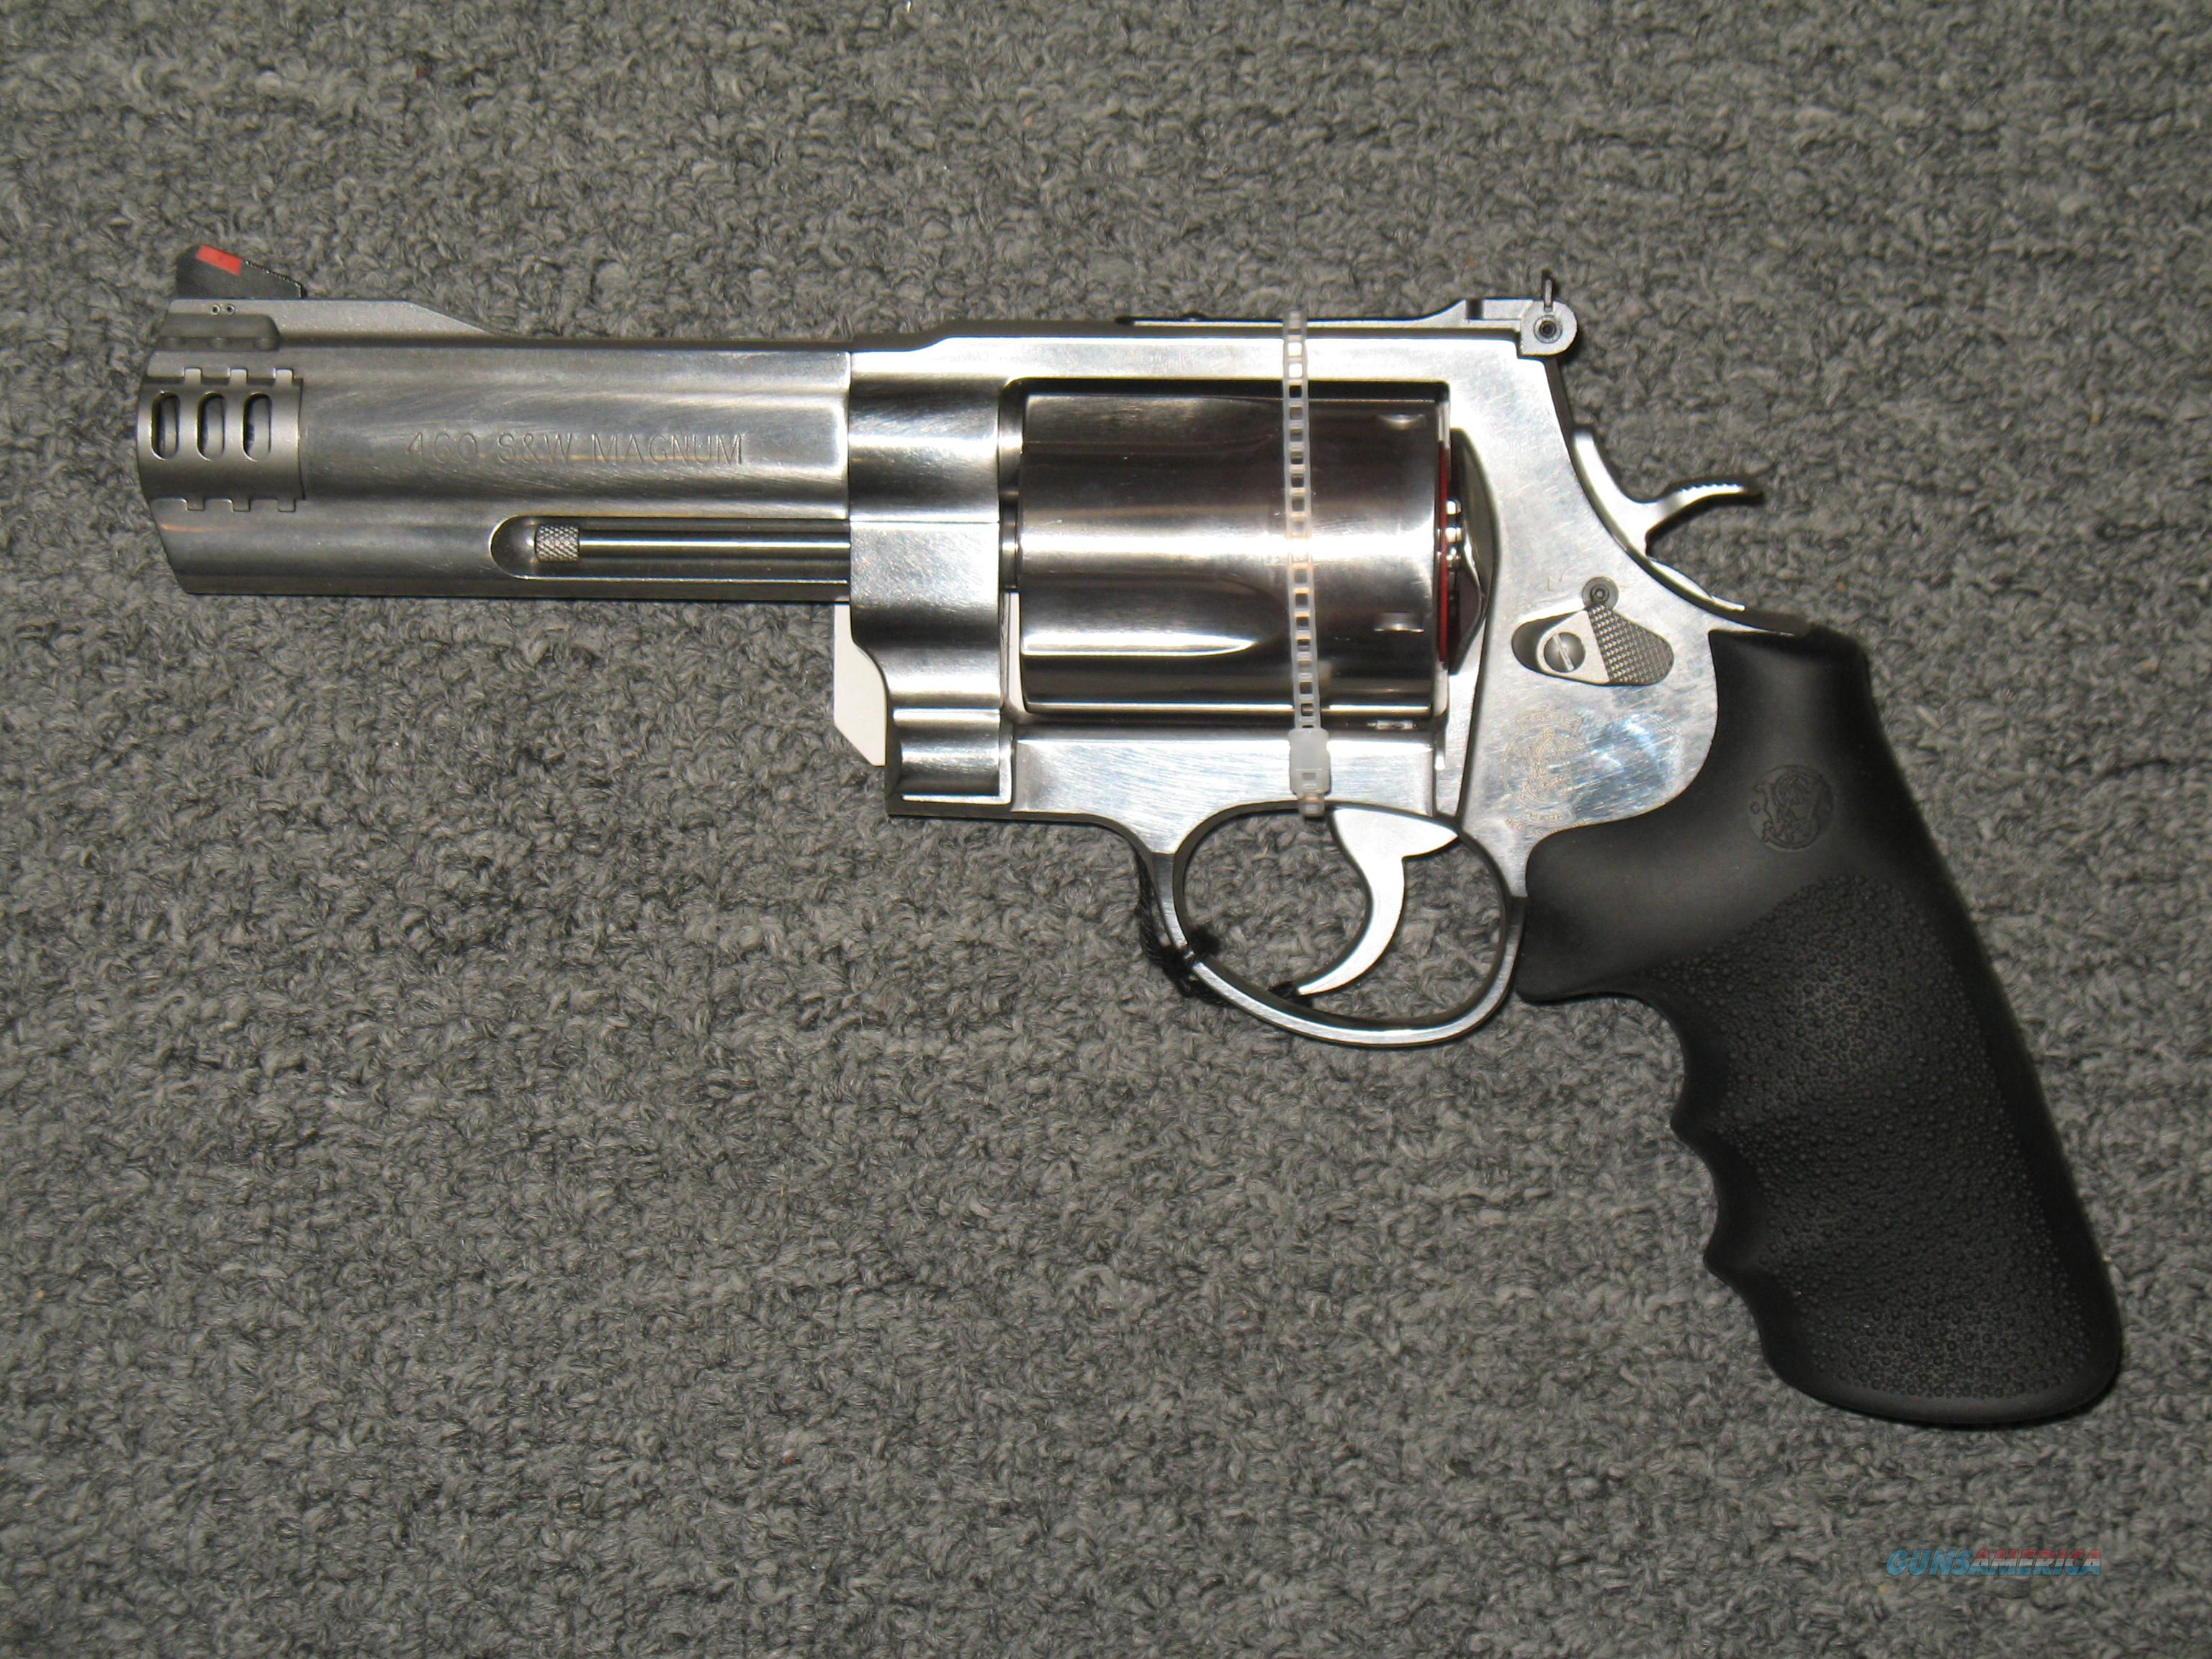 Smith & Wesson 460V (163465)  Guns > Pistols > Smith & Wesson Revolvers > Full Frame Revolver